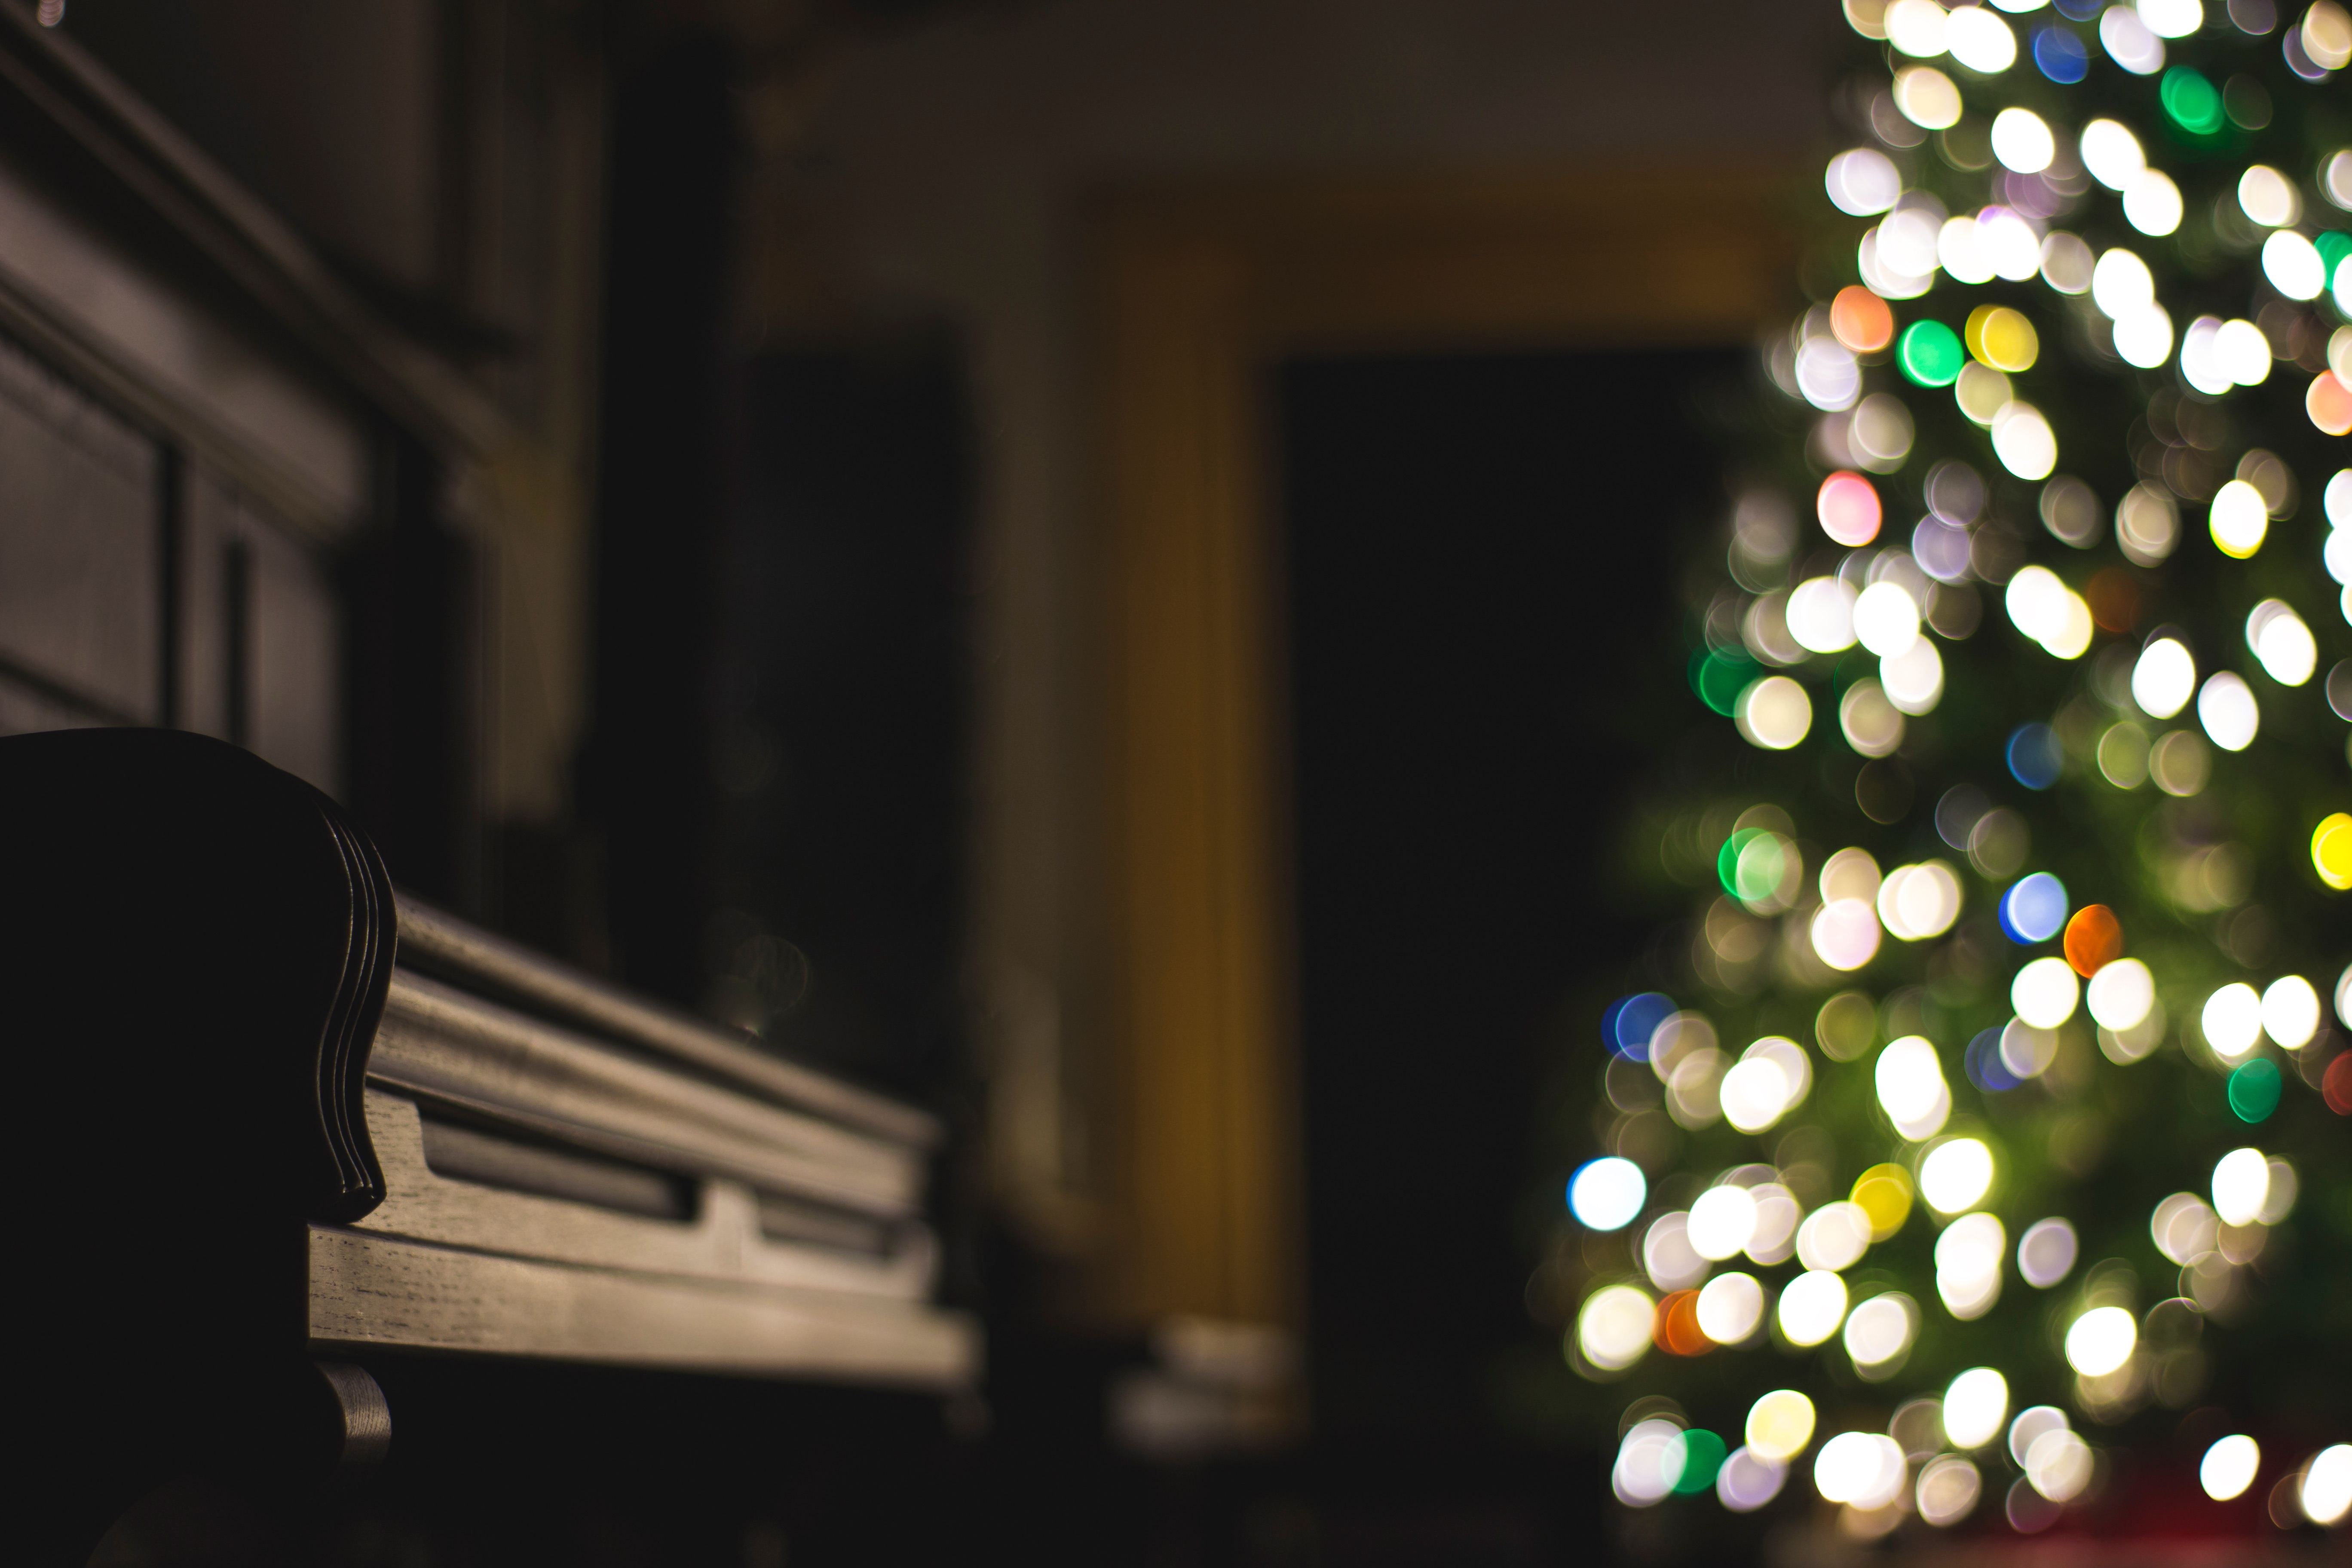 The Top 12 Carols of Christmas (According to Me)